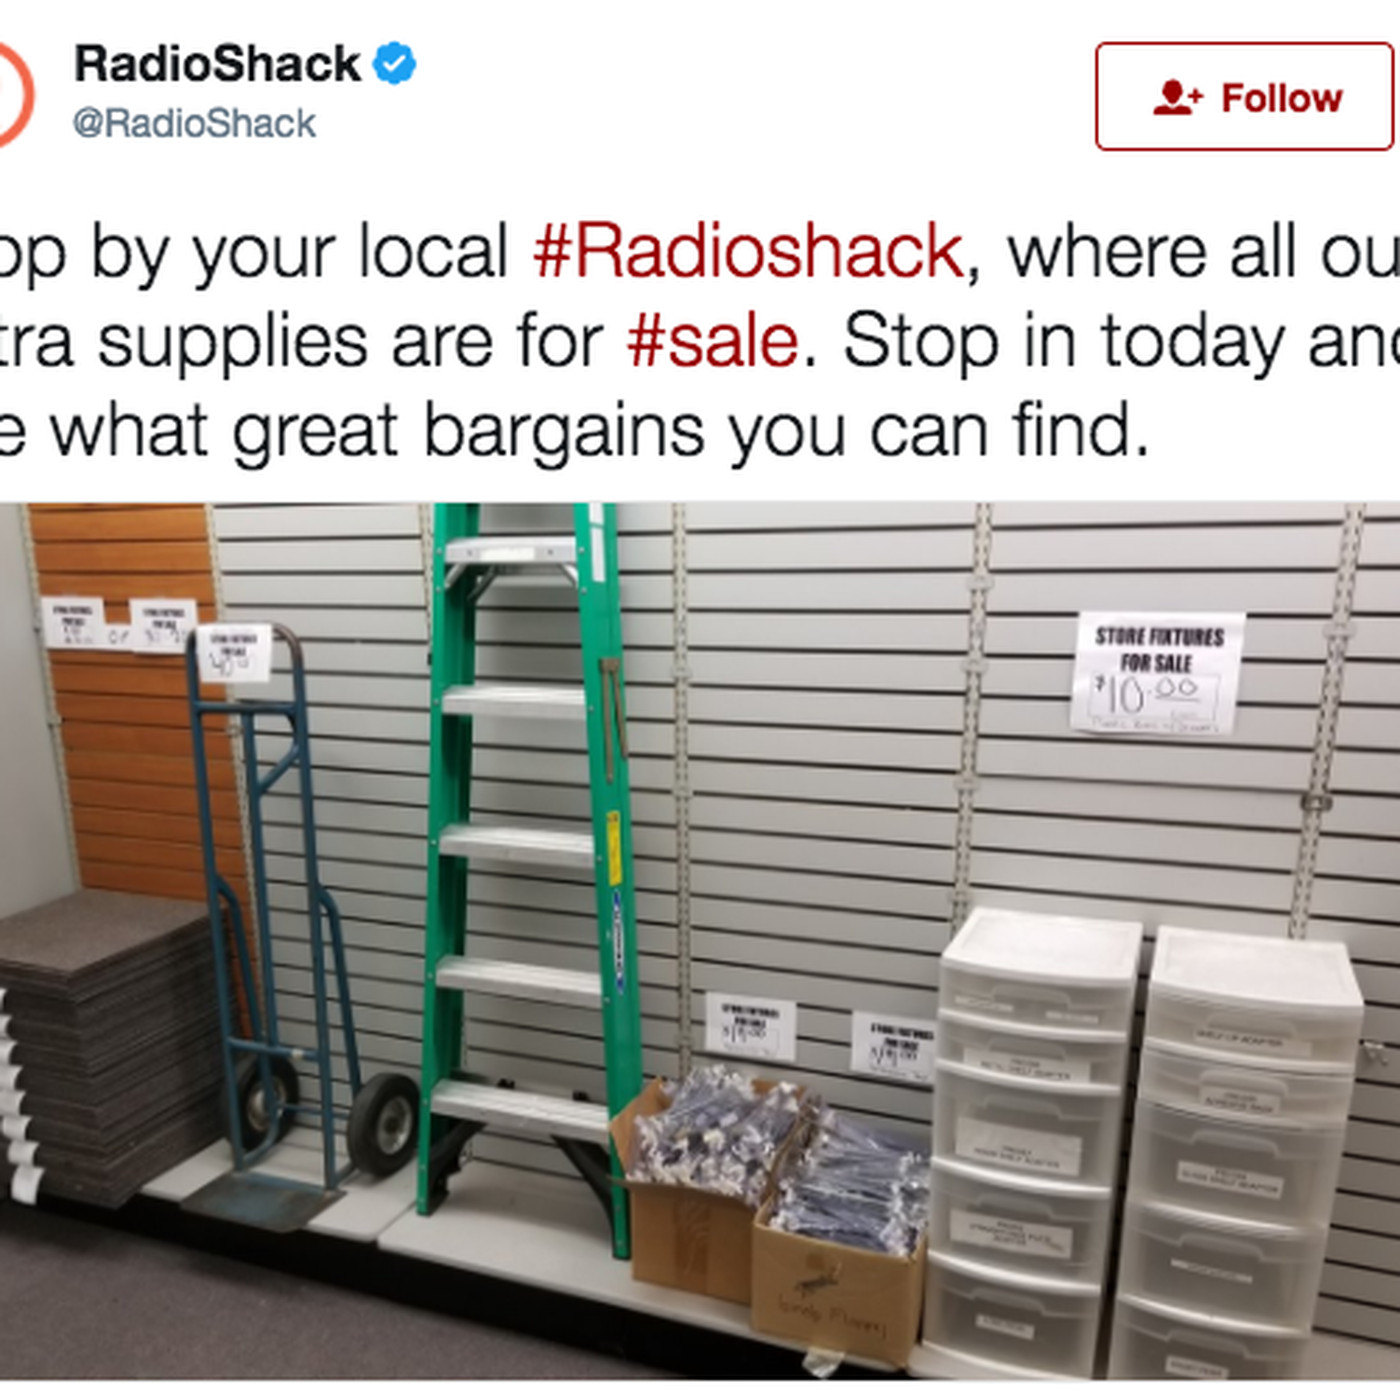 With nothing left to sell, RadioShack is selling itself to people